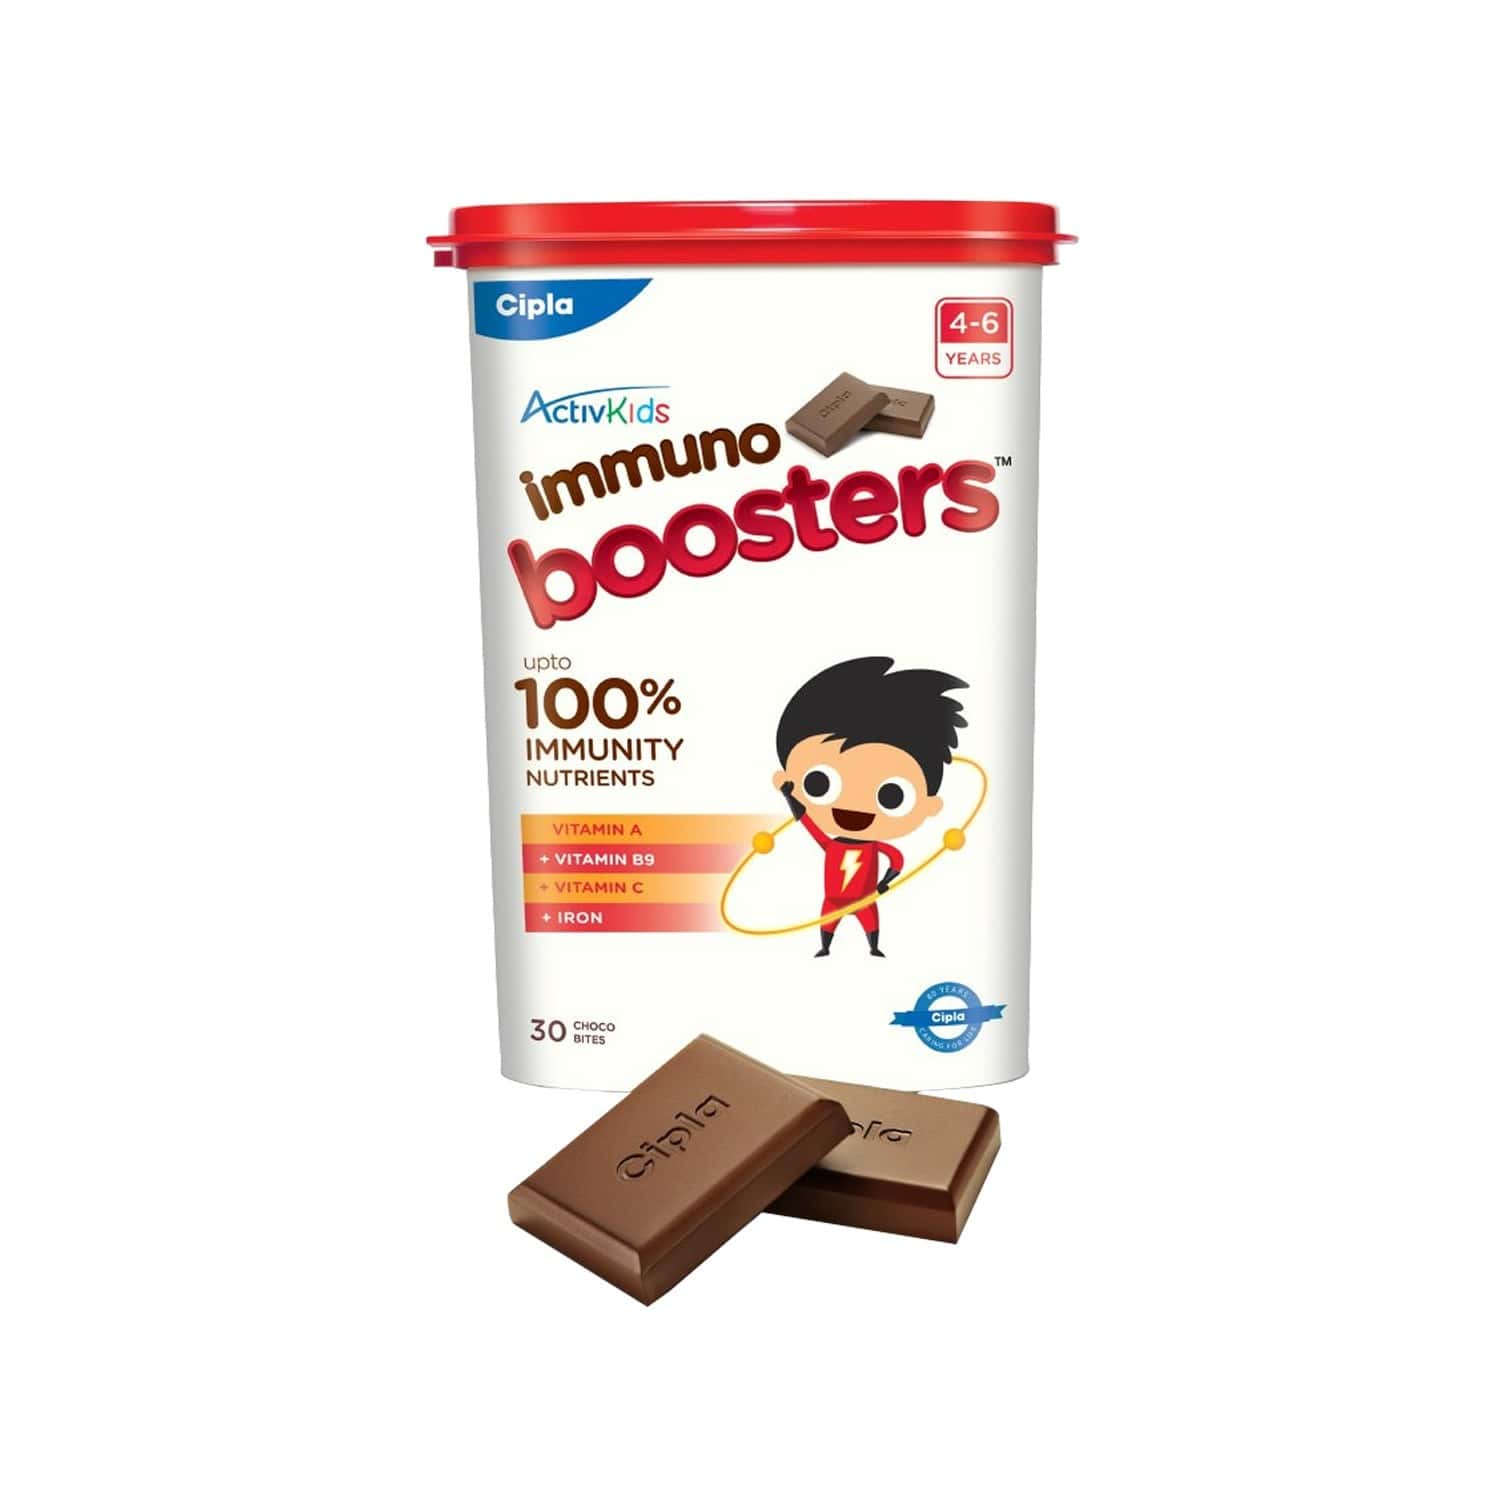 Cipla Activkids Immuno Boosters Nutrition Bar 4-6 Years Container Of 30 's